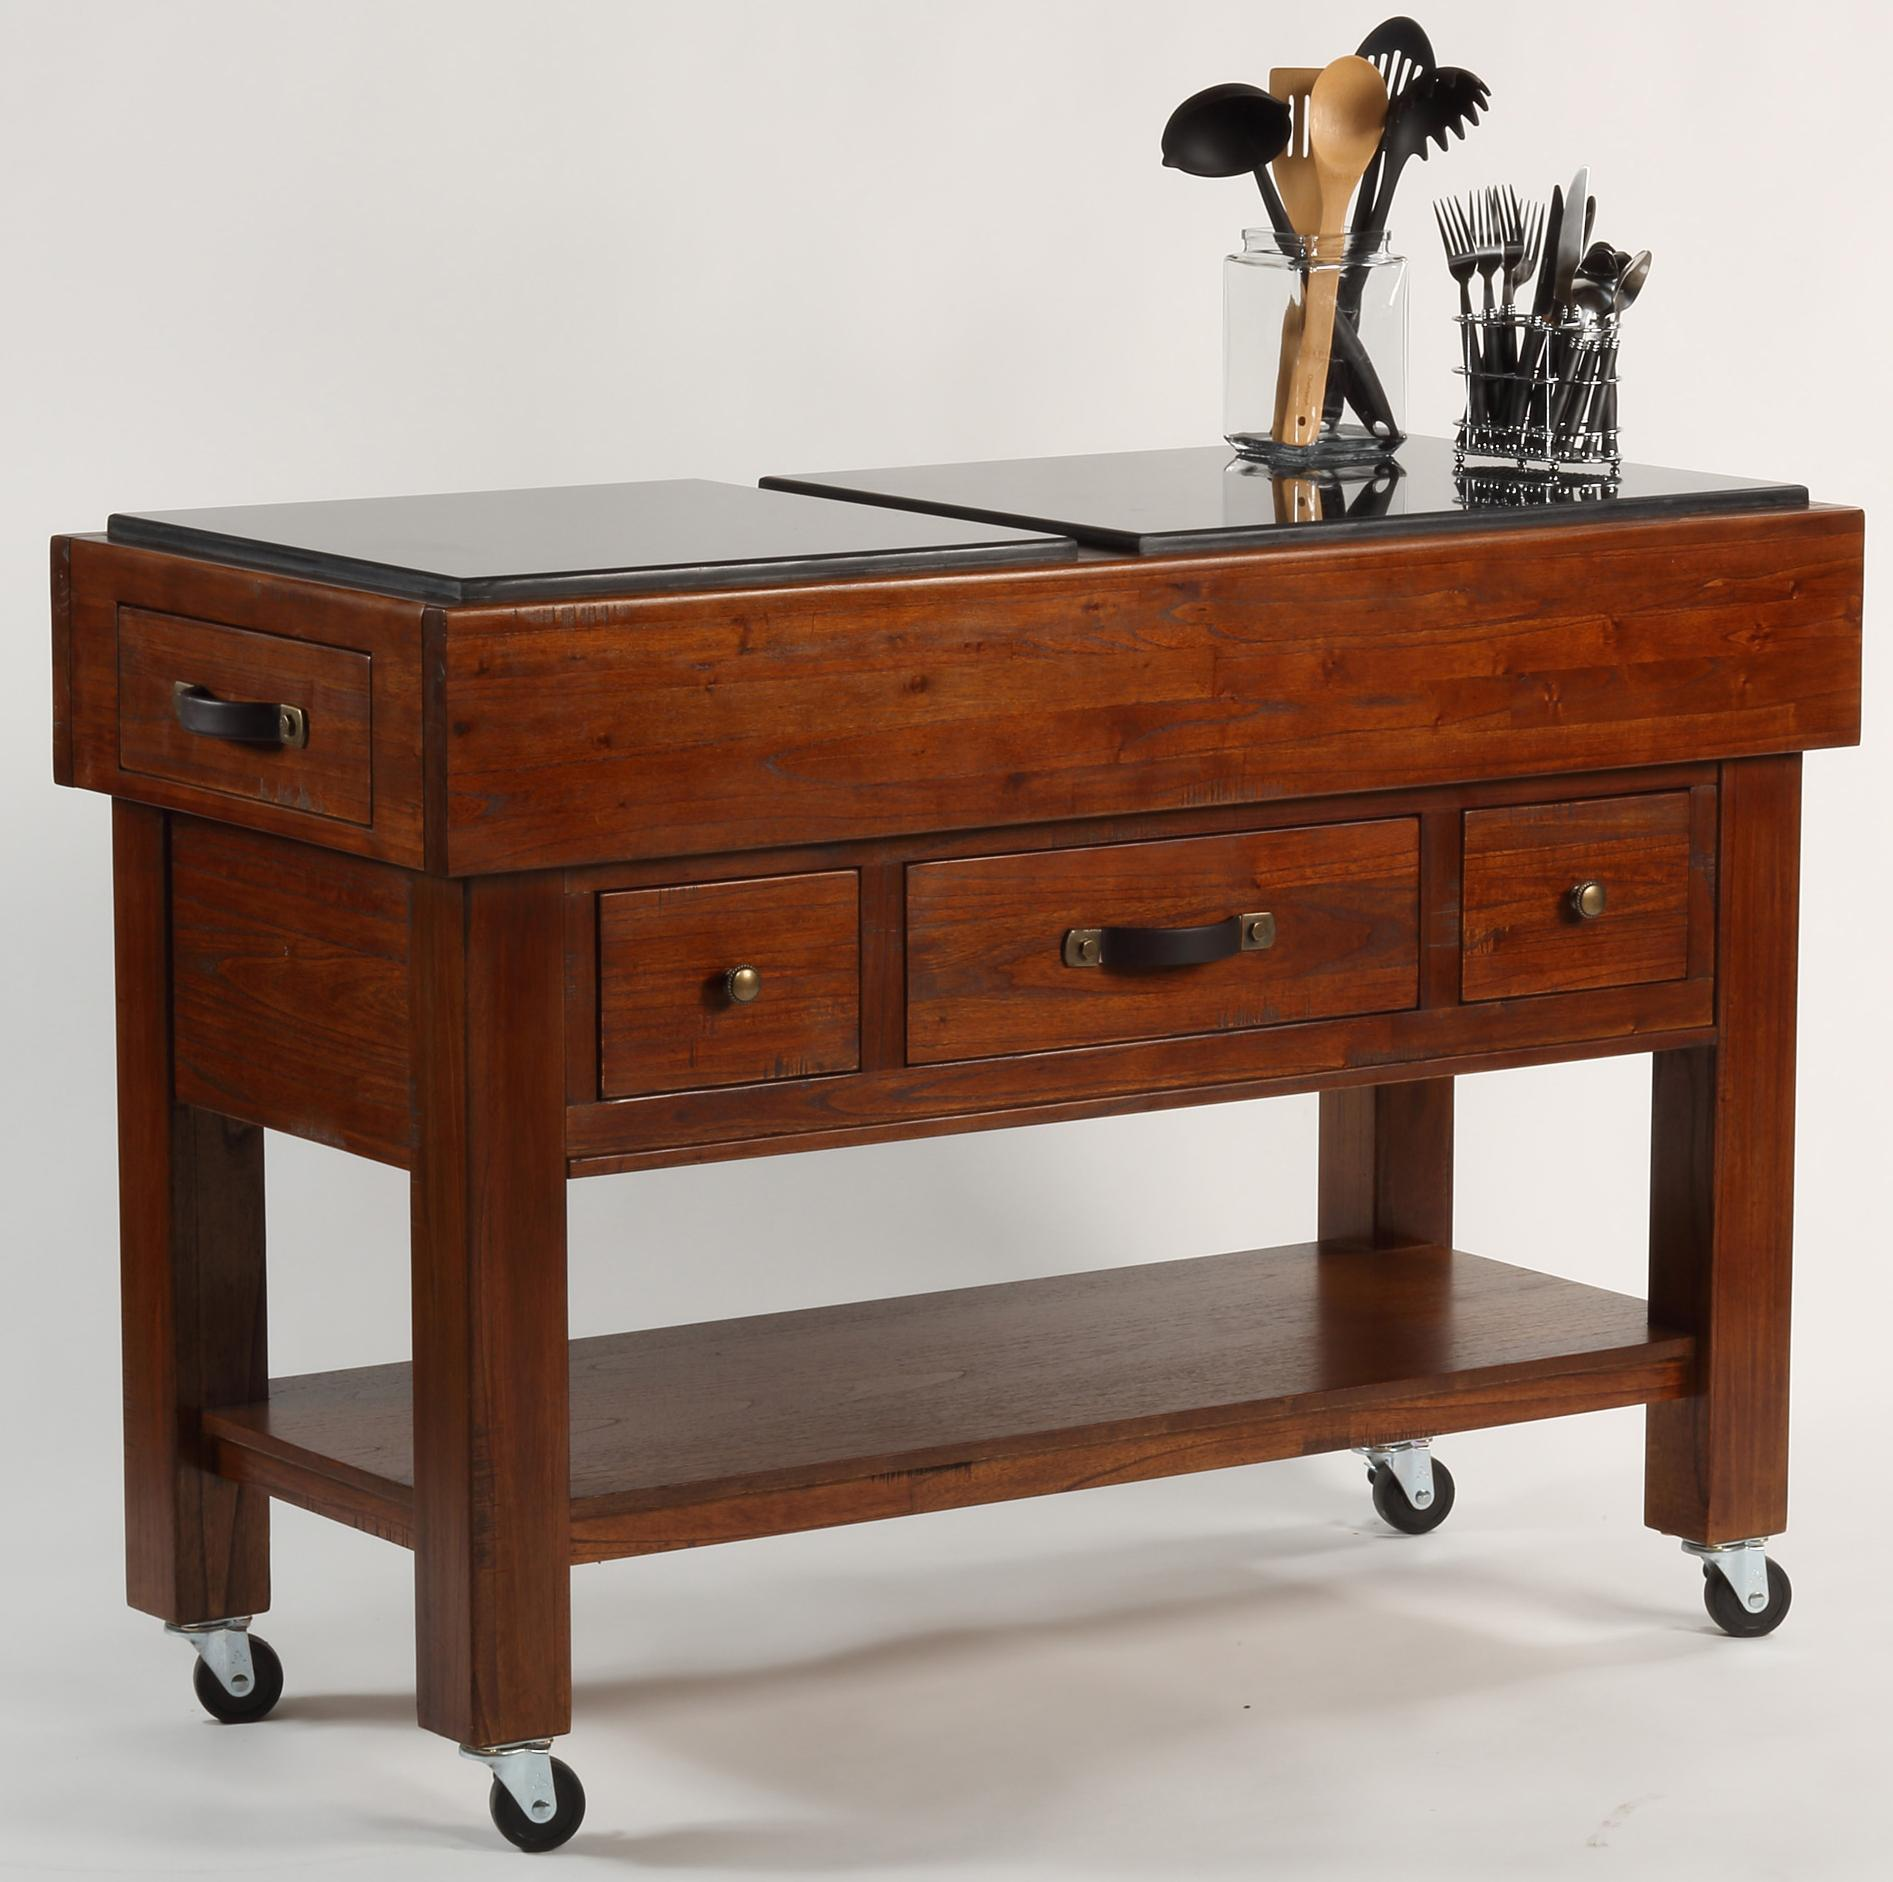 Serving Table w Casters by Hillsdale